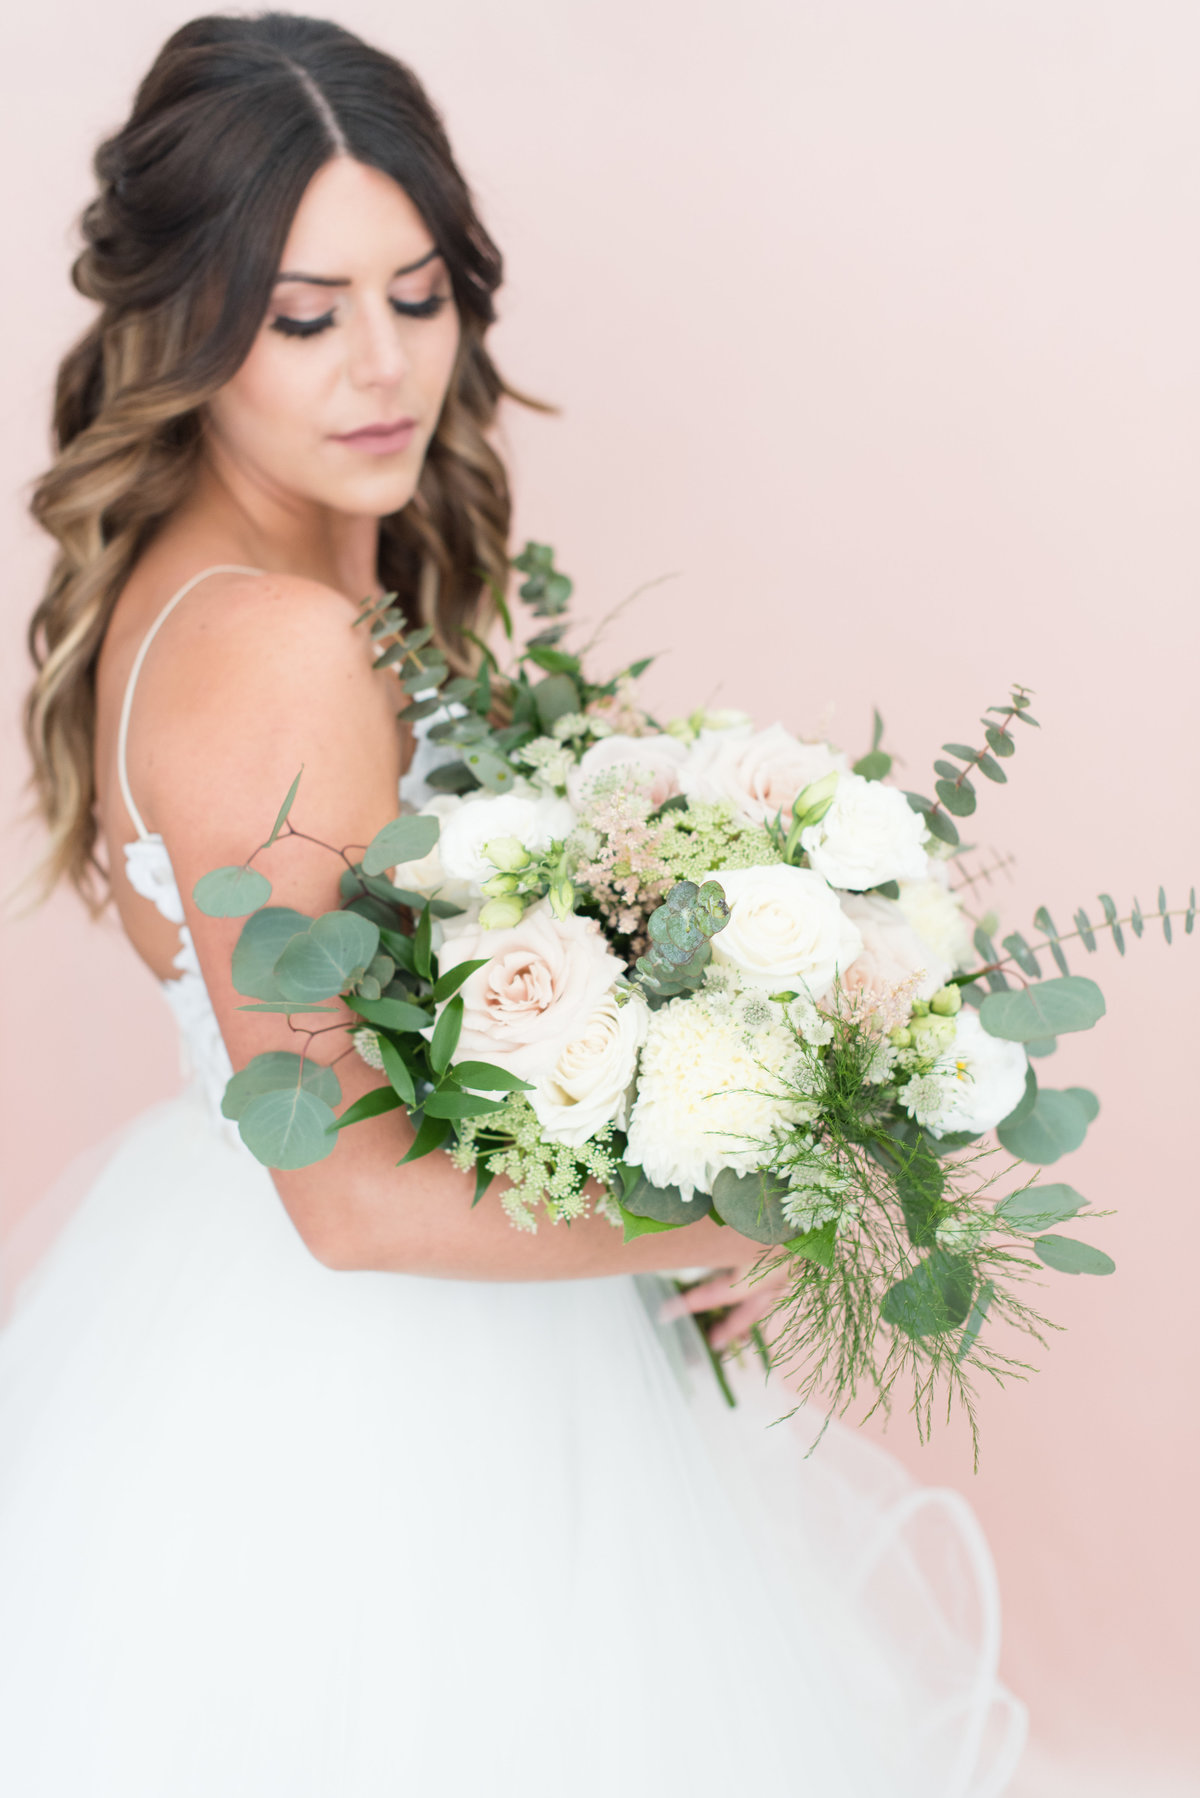 Bride holding her bouquet of quicksand roses and eucalyptus designed by Superior Floral Design in Thunder Bay